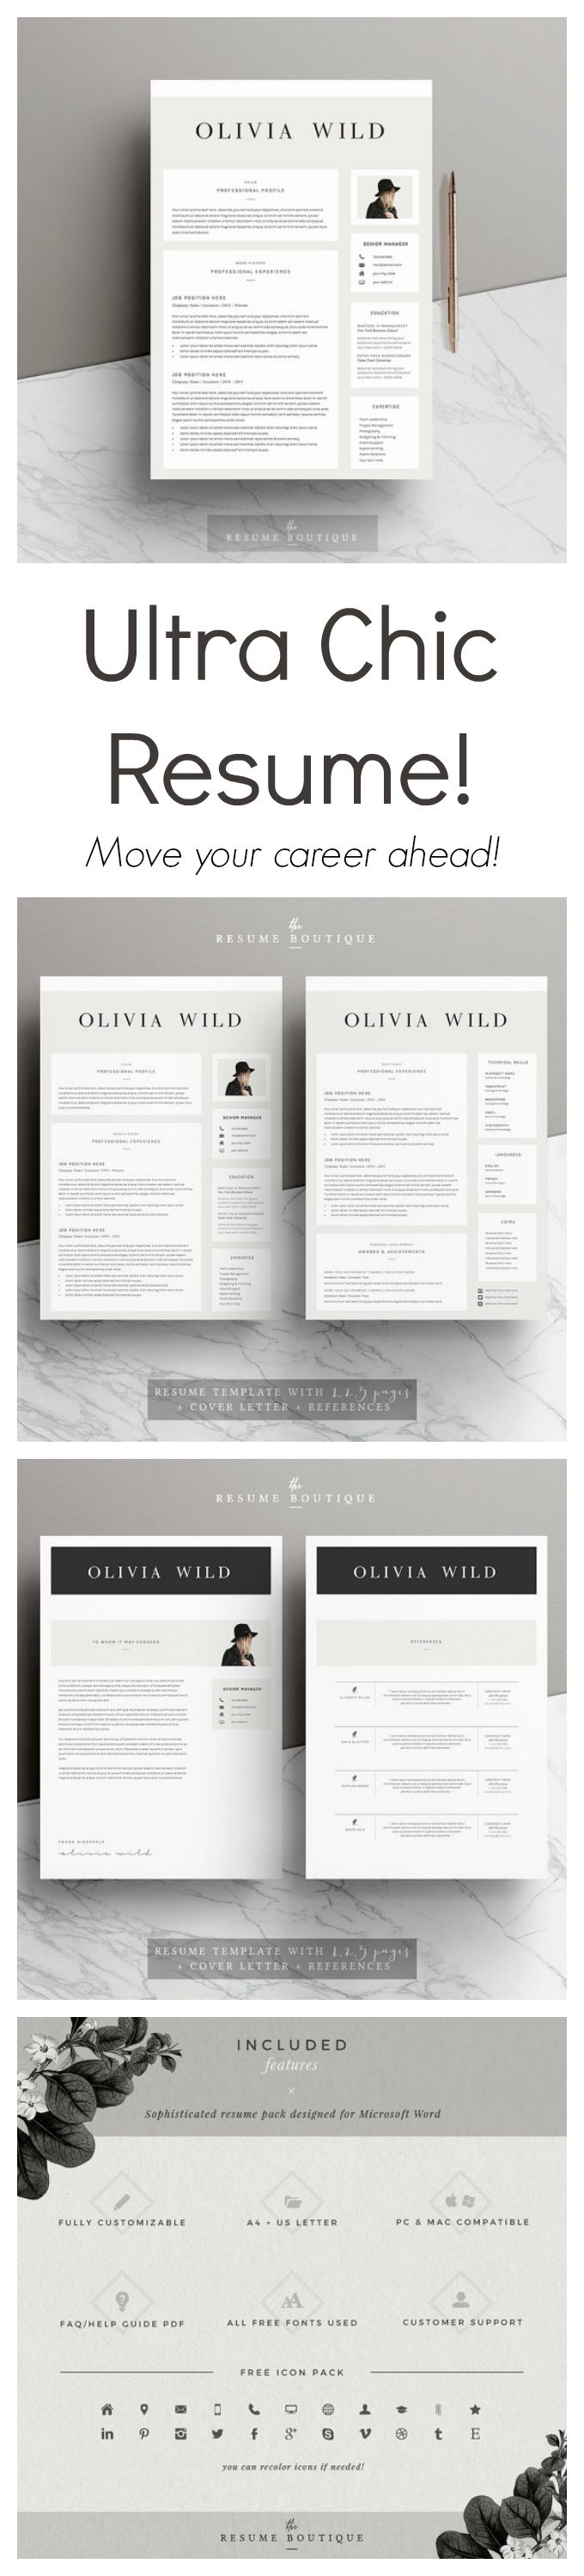 """This is such a stylish and professional resume template! Move your career ahead using it.  #Resume #Template 5 pages 